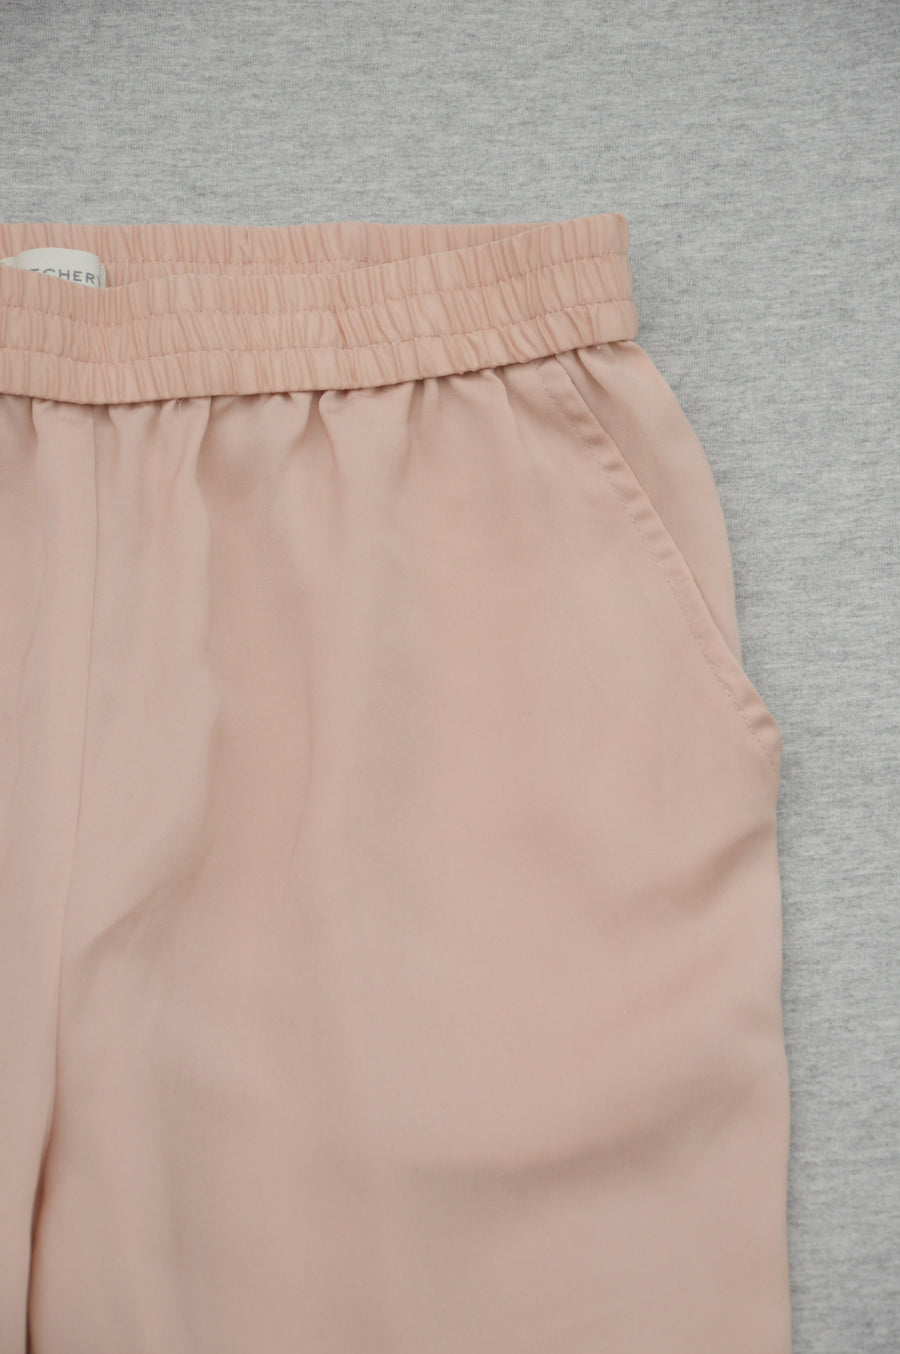 Witchery - nearly new - blush pink satin-feel pants, size 8Y